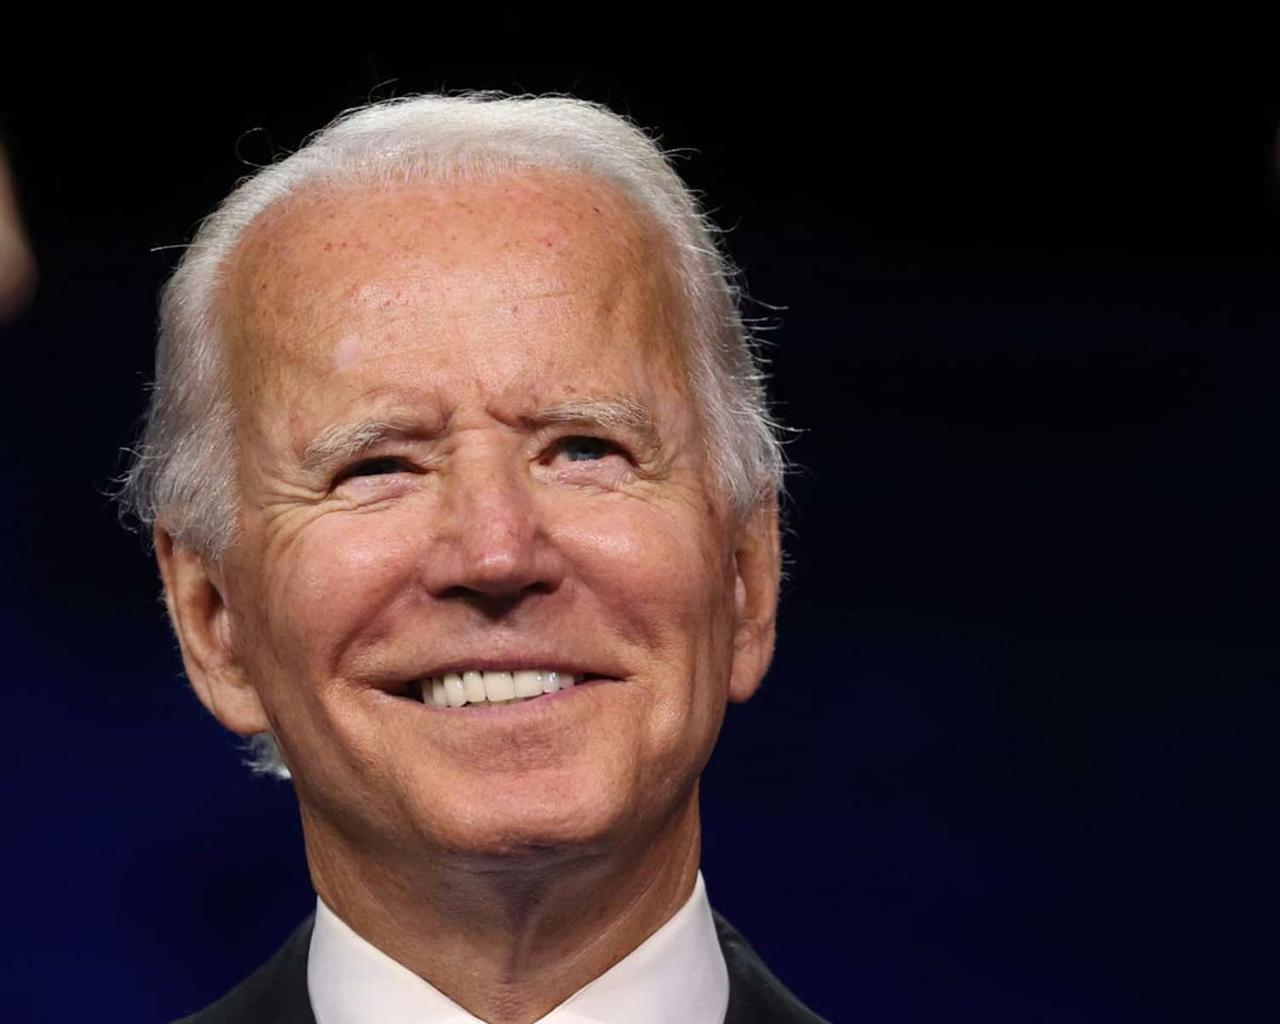 Biden will pressure US companies to pay 'acceptable' taxes on Wednesday